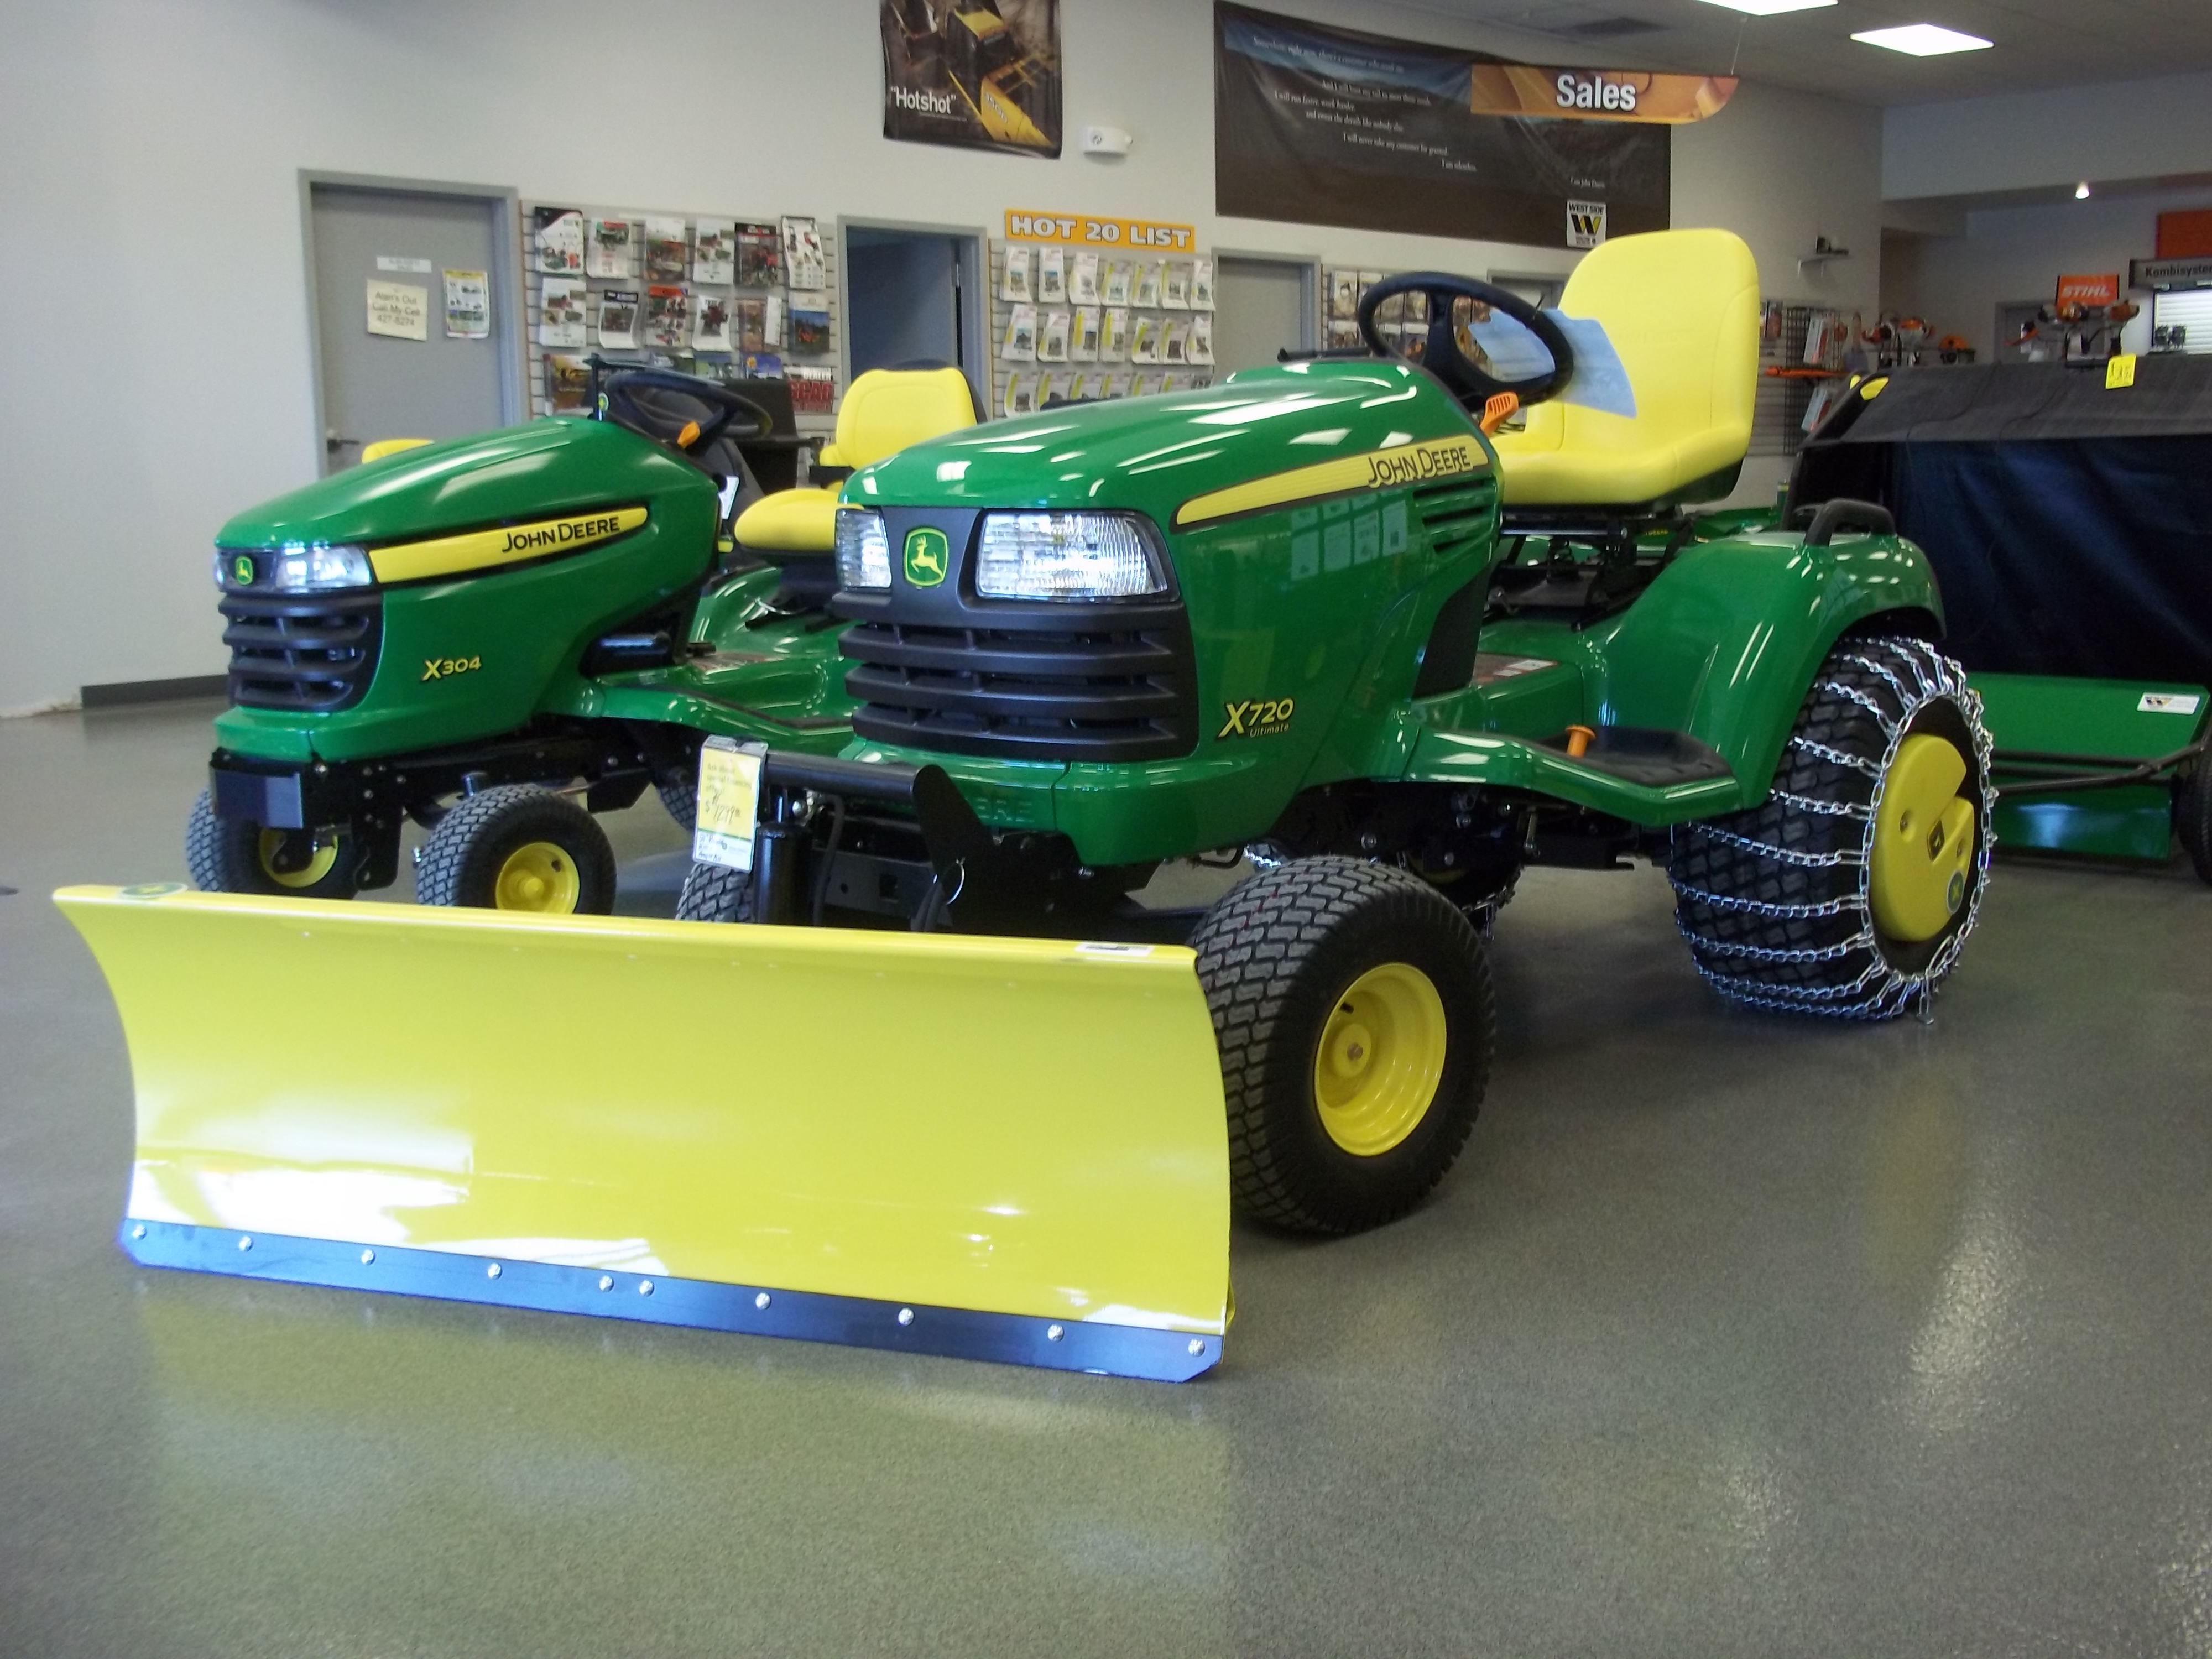 X700 Series tractor on right | John Deere equipment ...